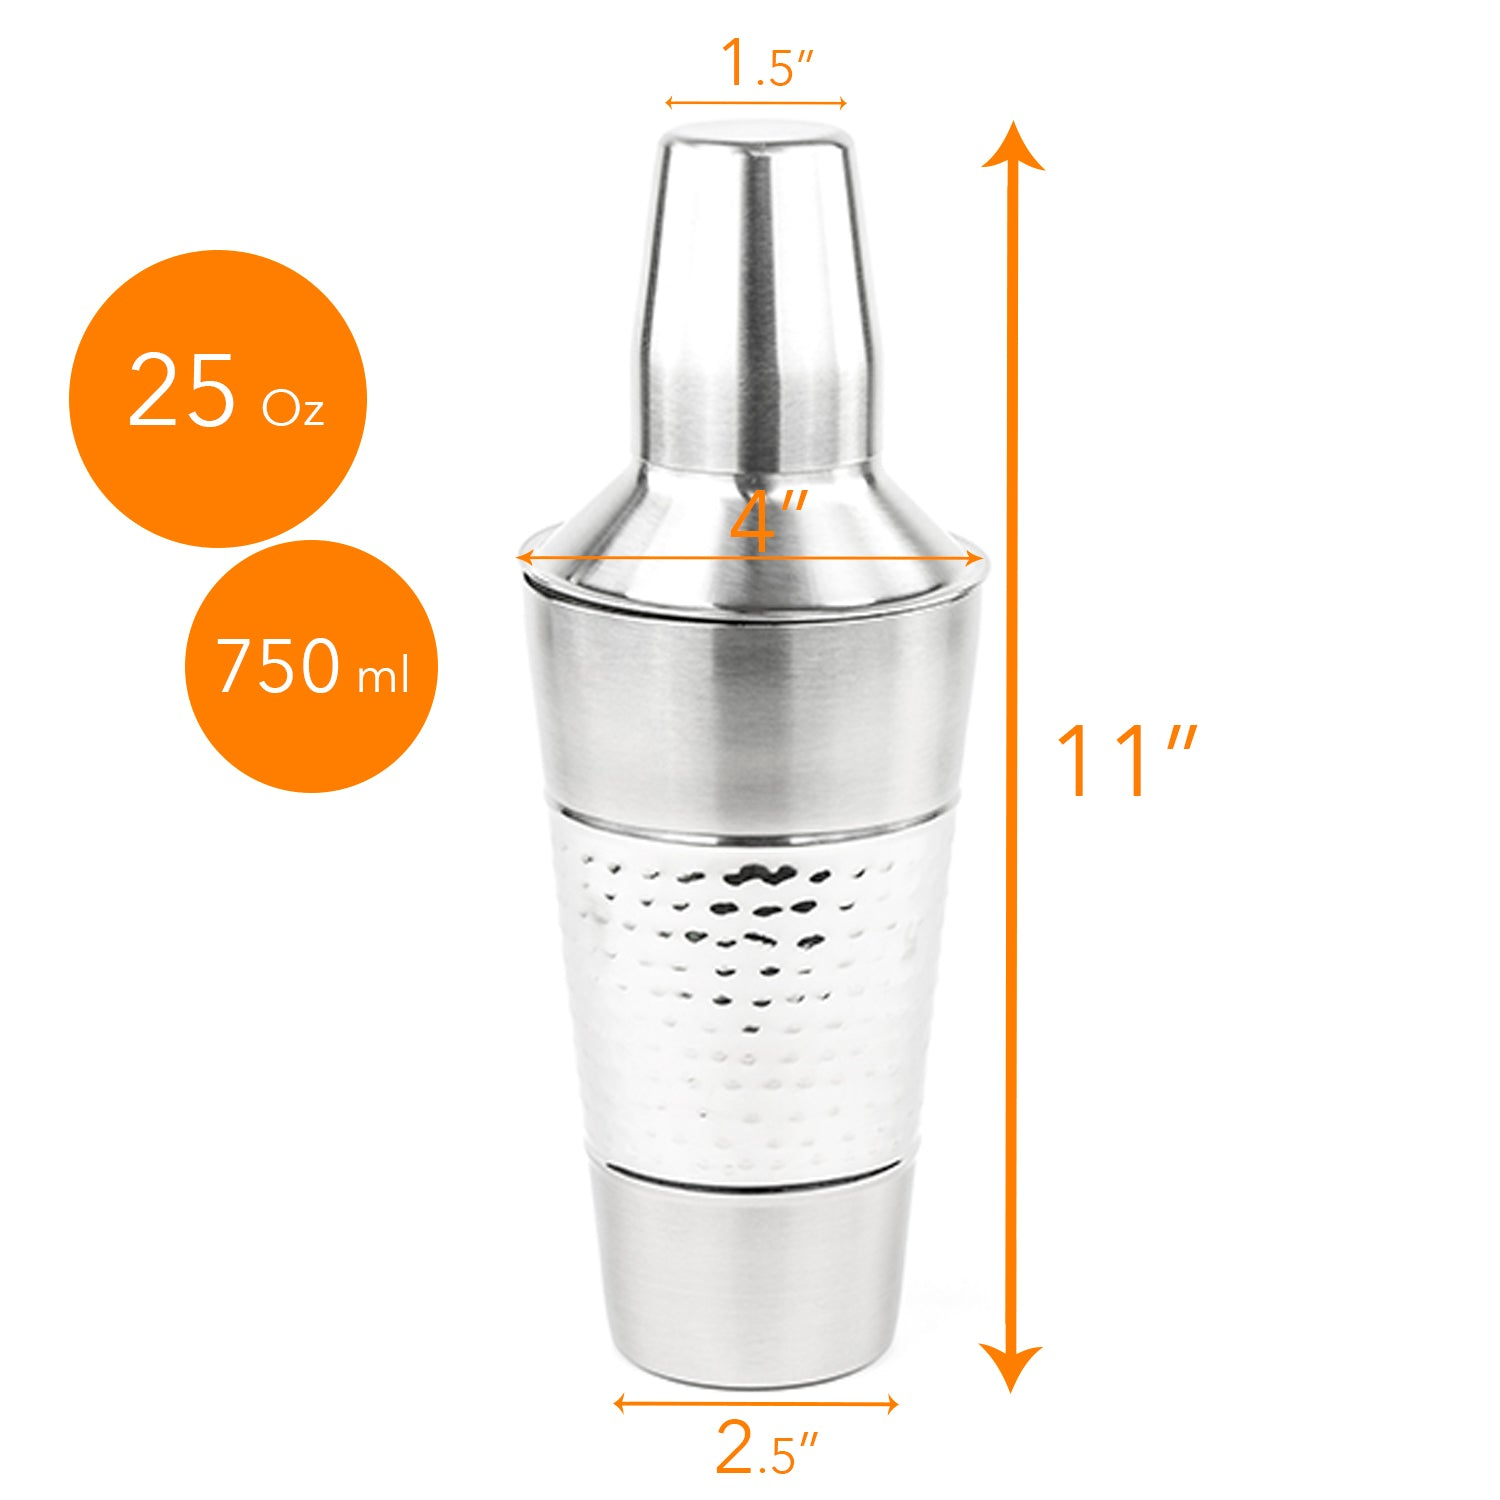 Stainless Steel Cocktail Mixer - Tornado Cocktail Shaker with Jigger Cap and Strainer - 25 Oz